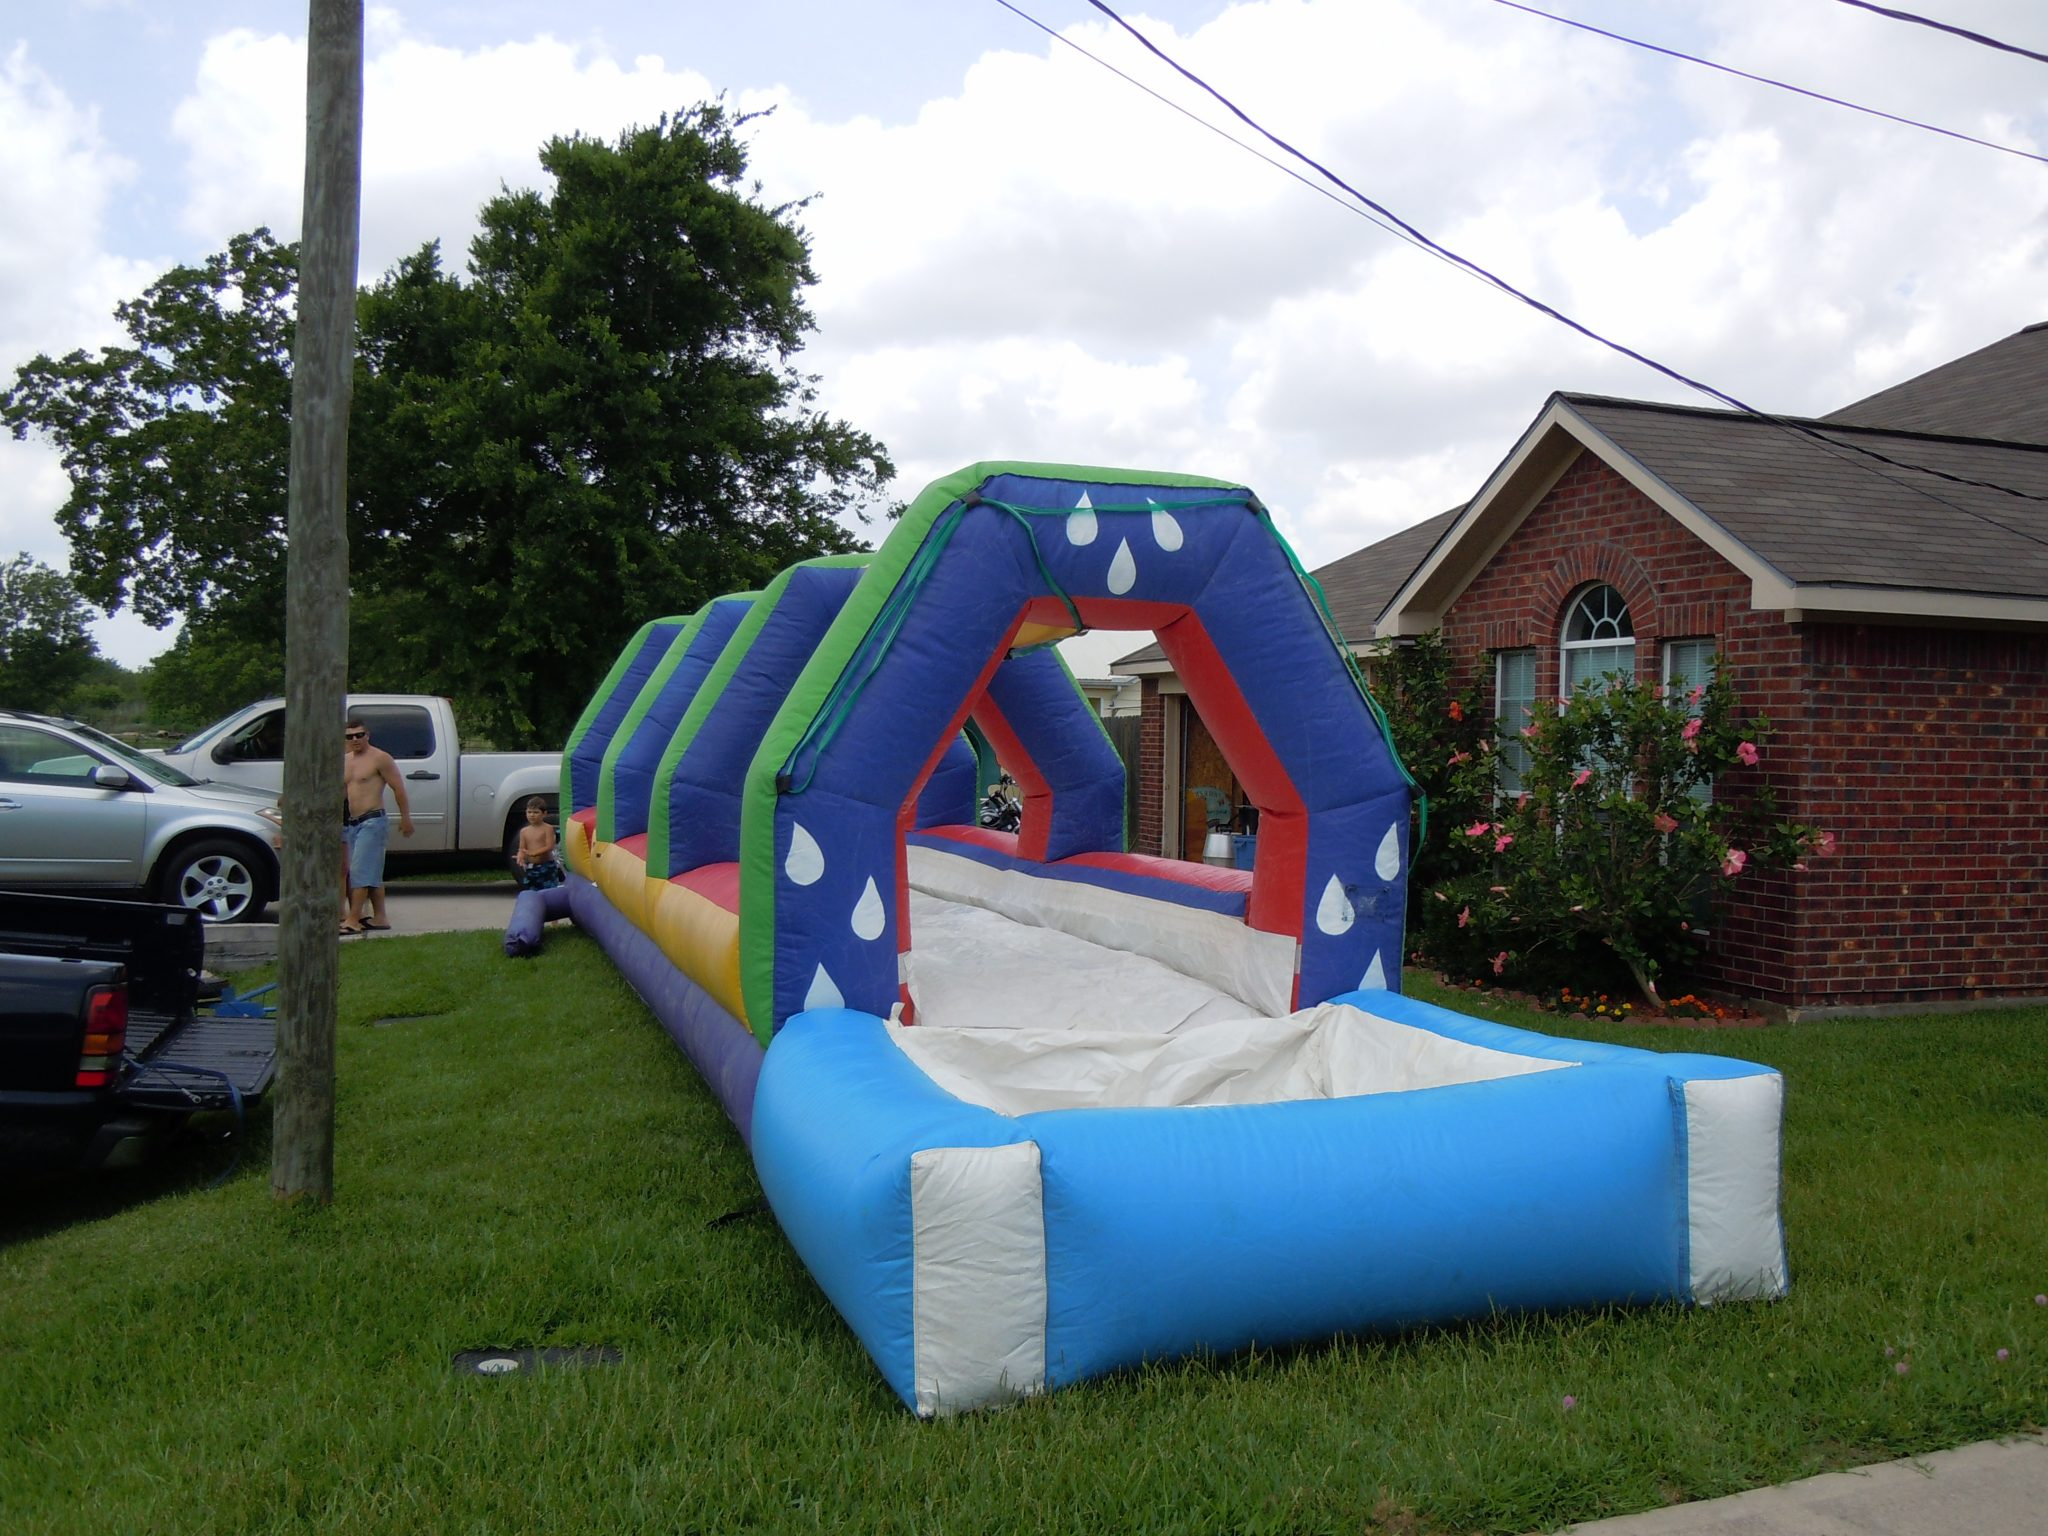 Peachy The Bounce House Kings 79 Bond St Westminster Md 21157 Best Image Libraries Ponolprimenicaraguapropertycom